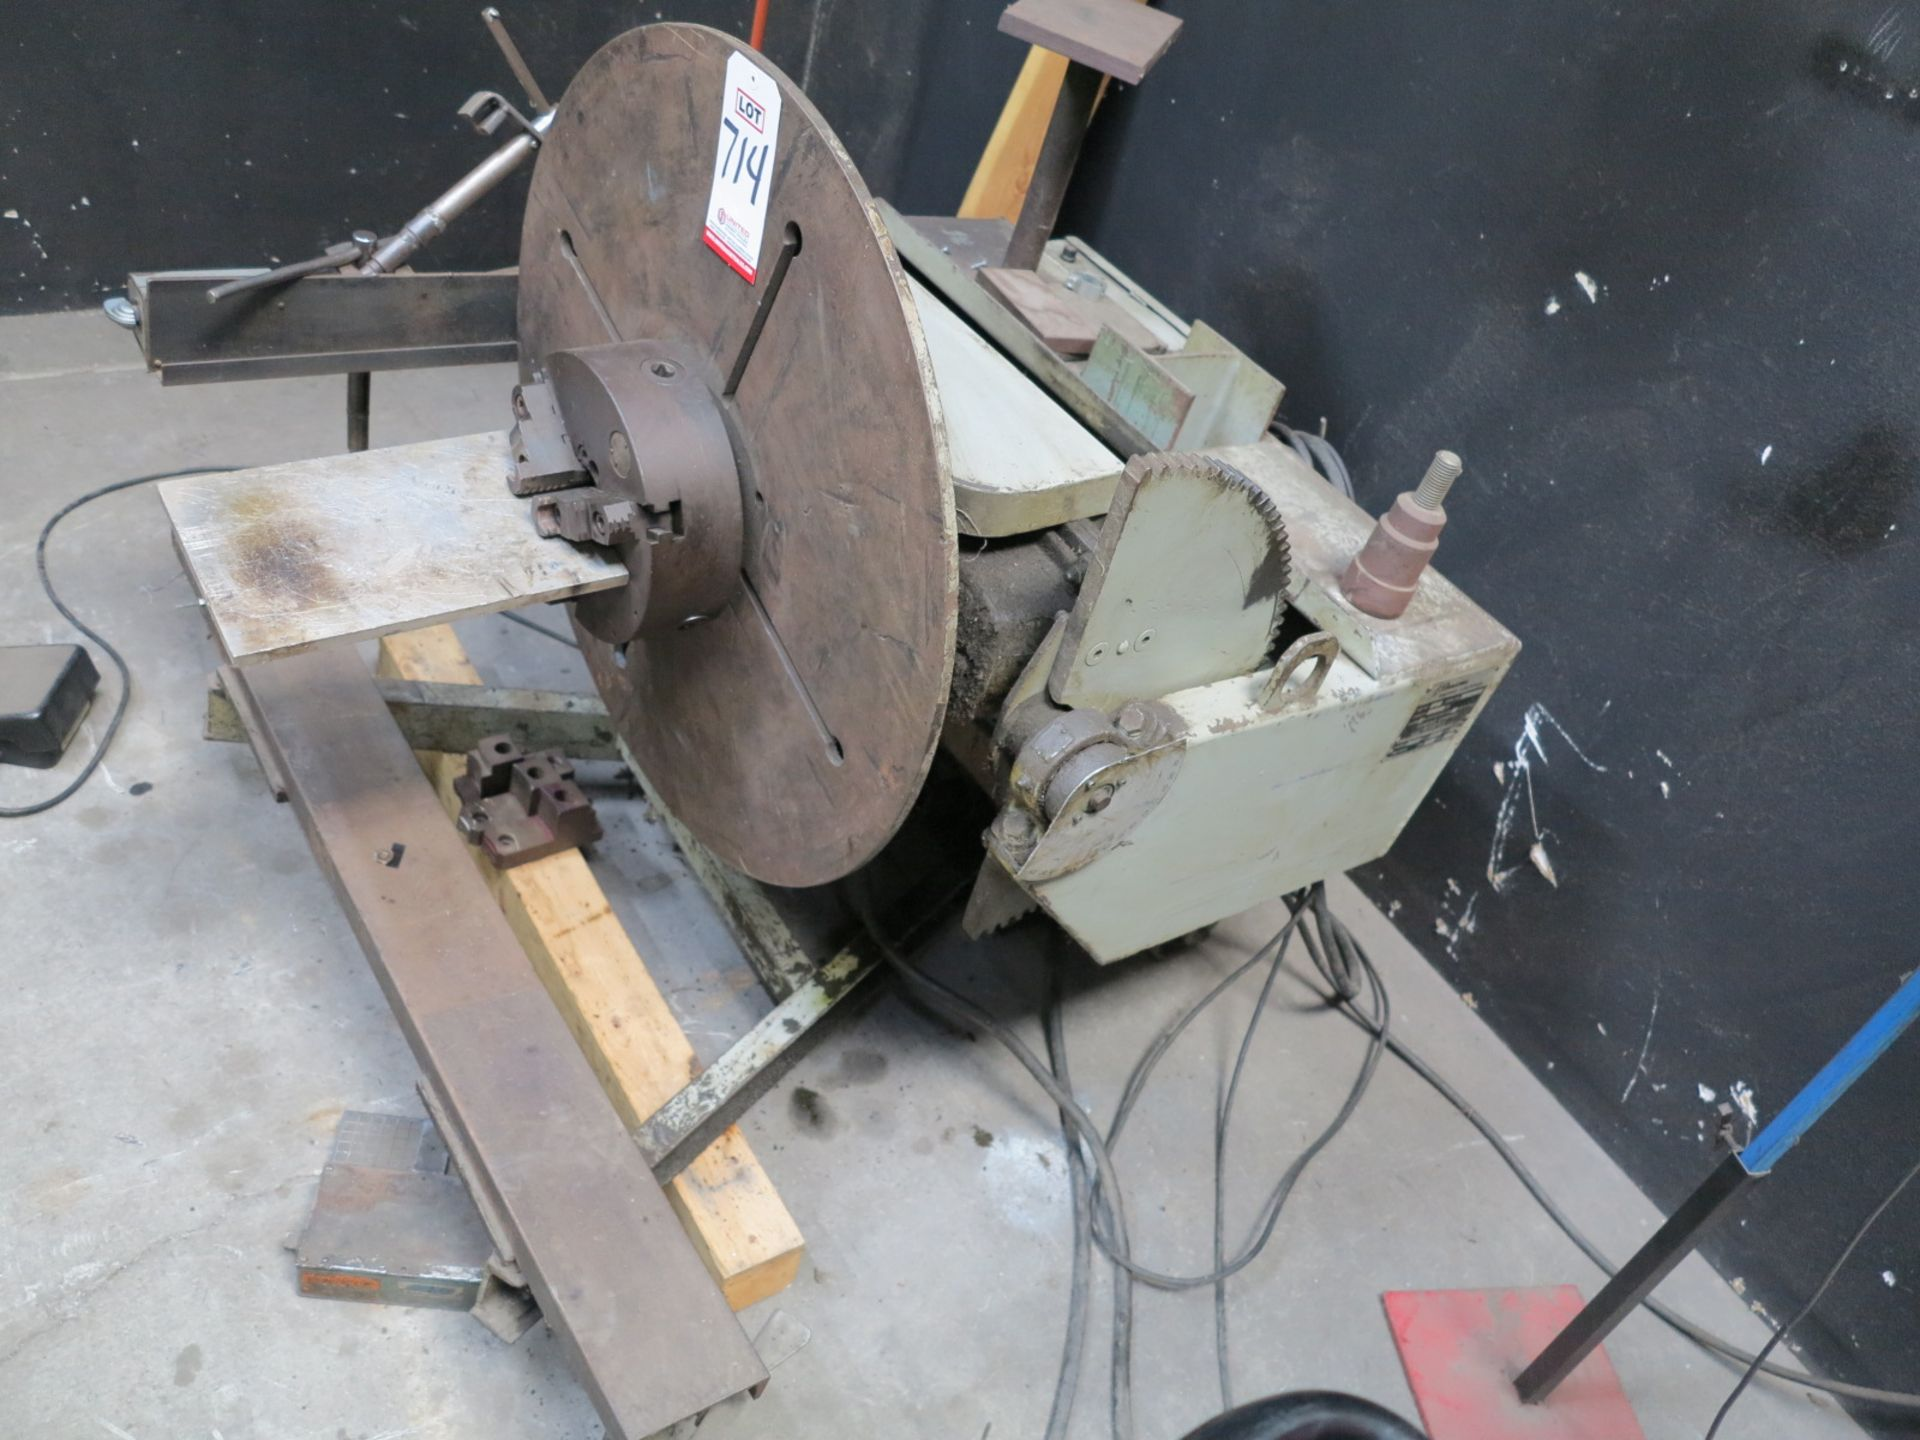 Lot 714 - RANSOME WELDING POSITIONER, MODEL 5-P, S/N 13-2871